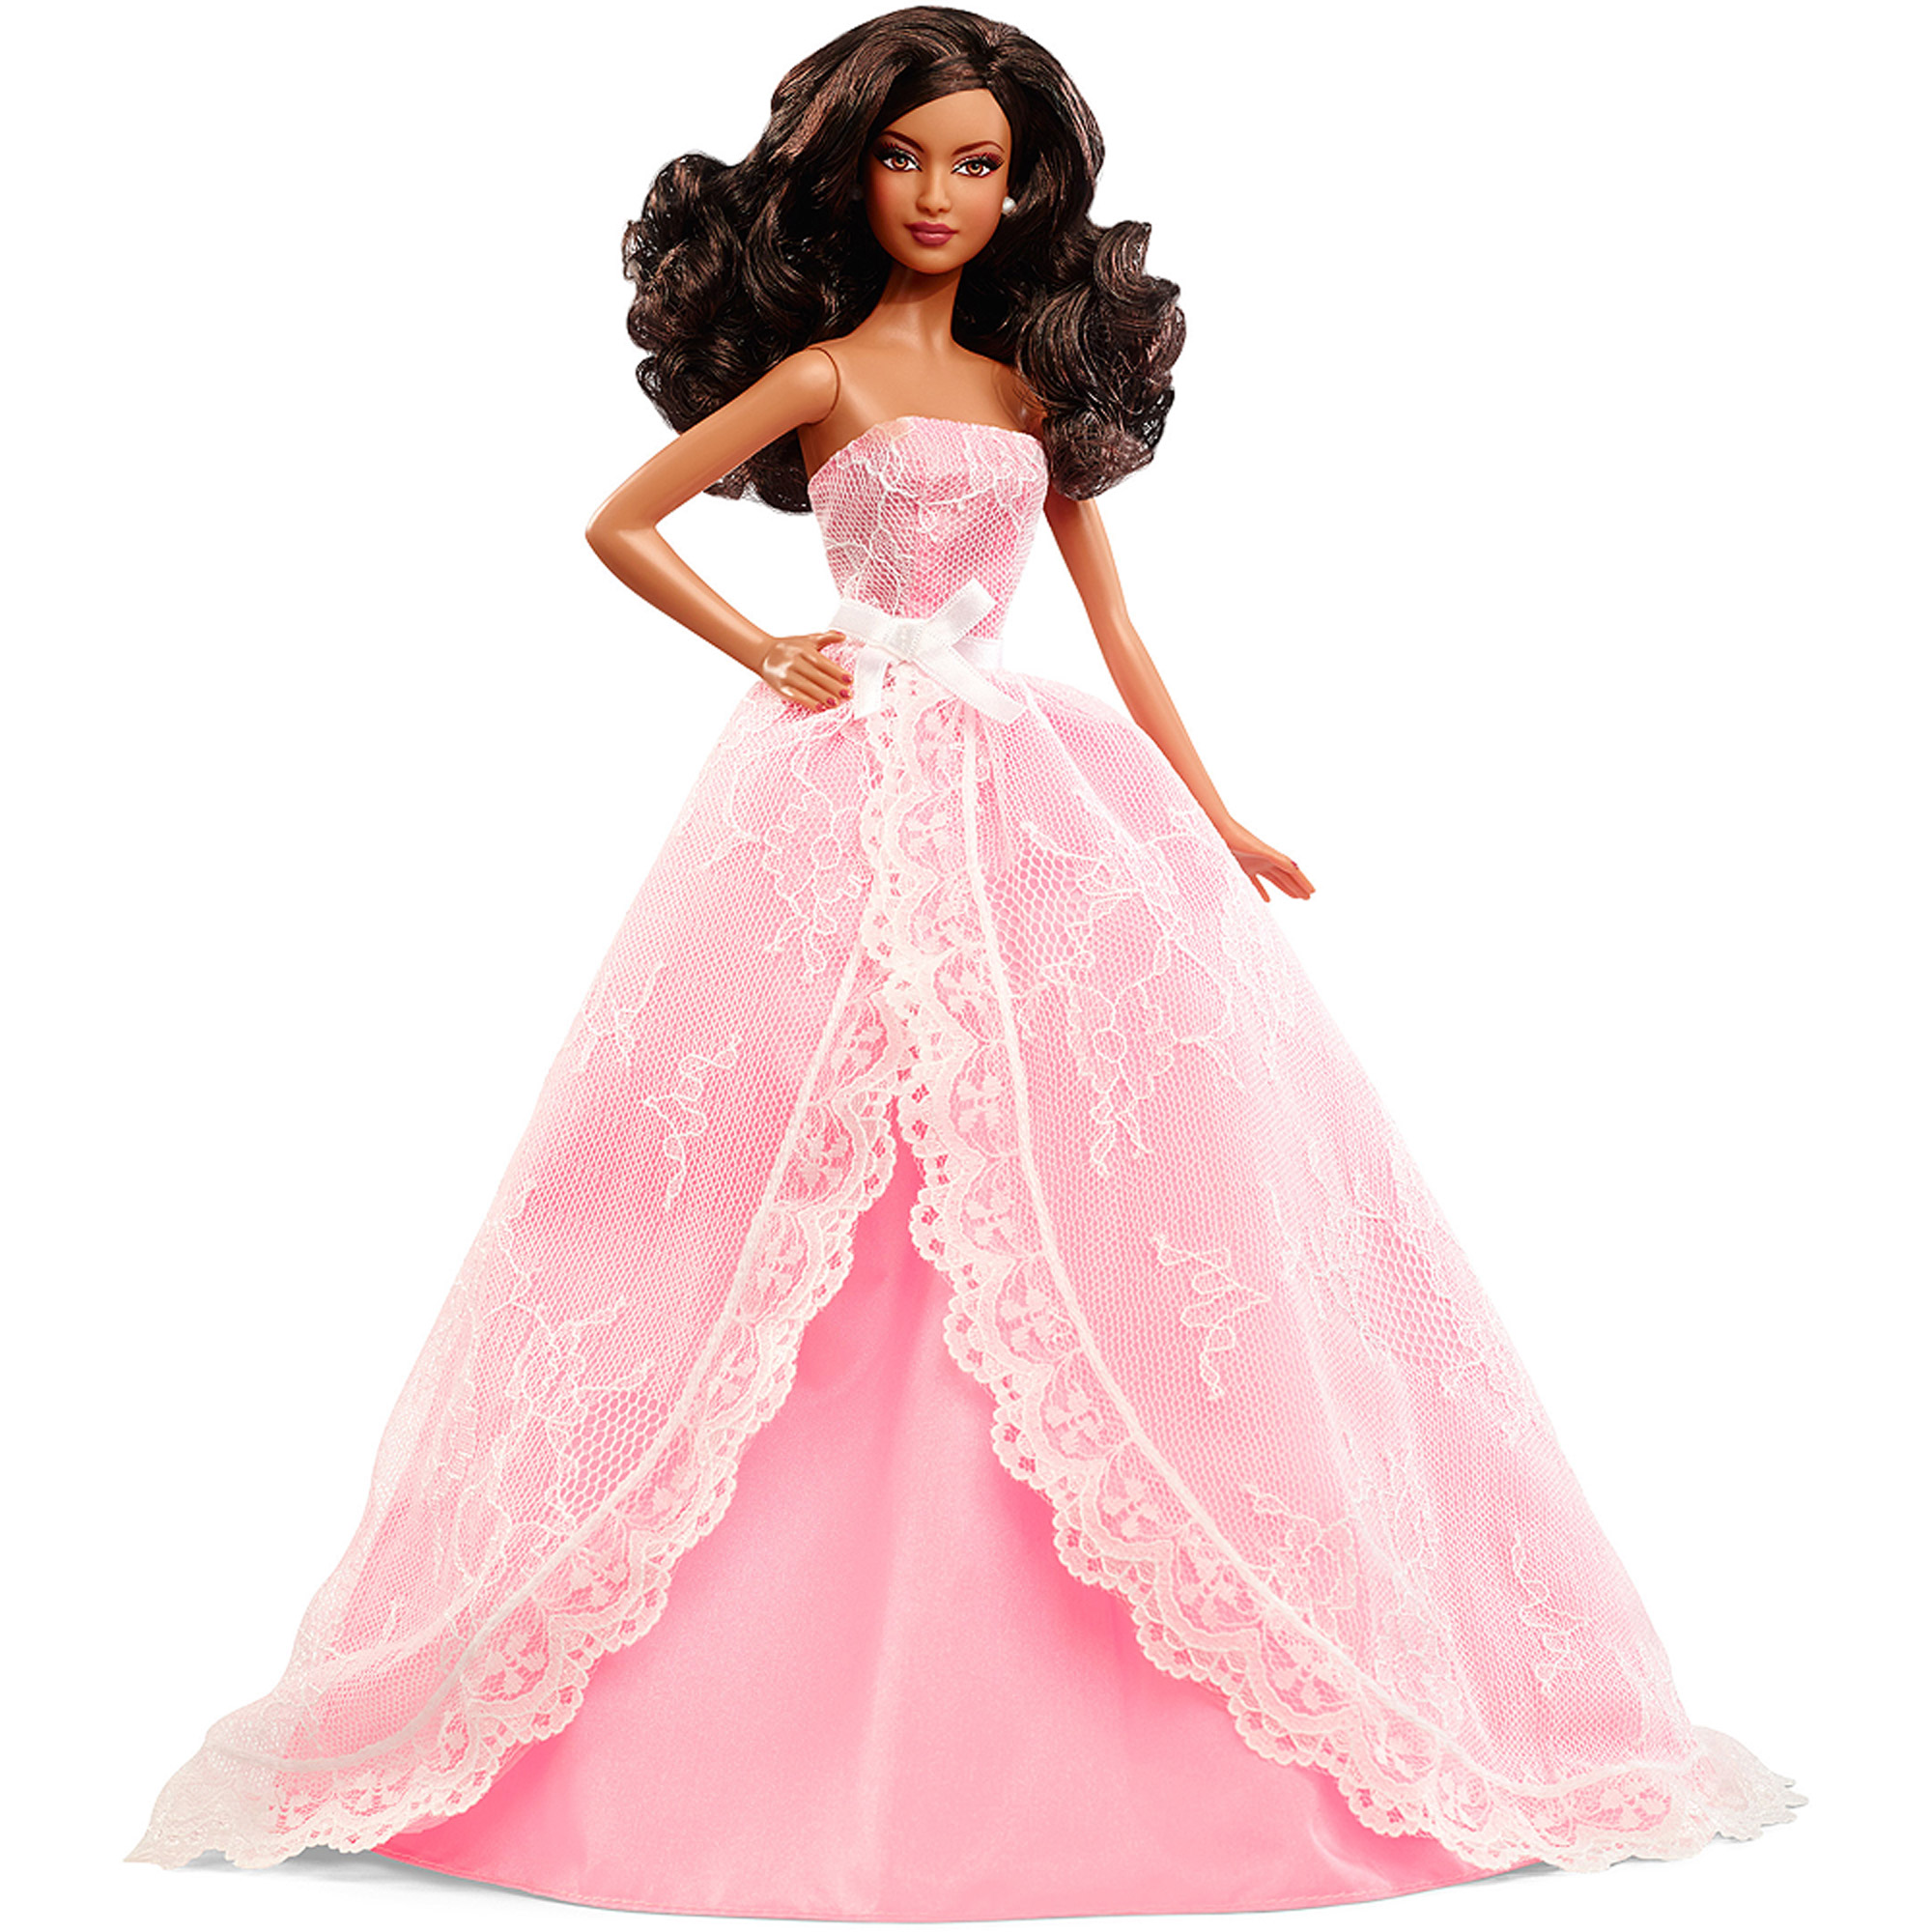 Barbie 2015 Birthday Wishes African-American Doll by Barbie